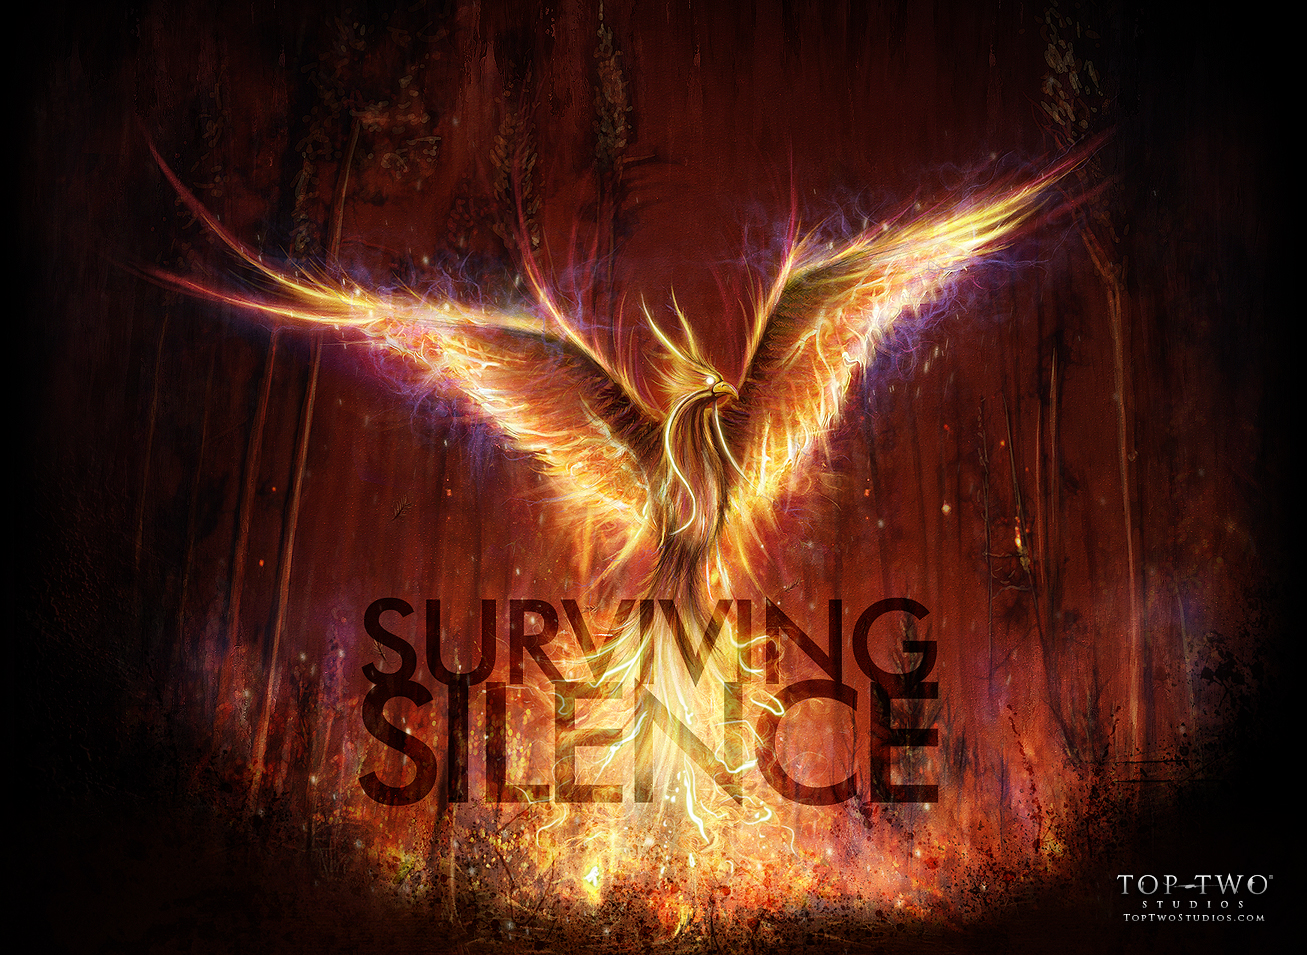 Surviving Silence by toptwostudios